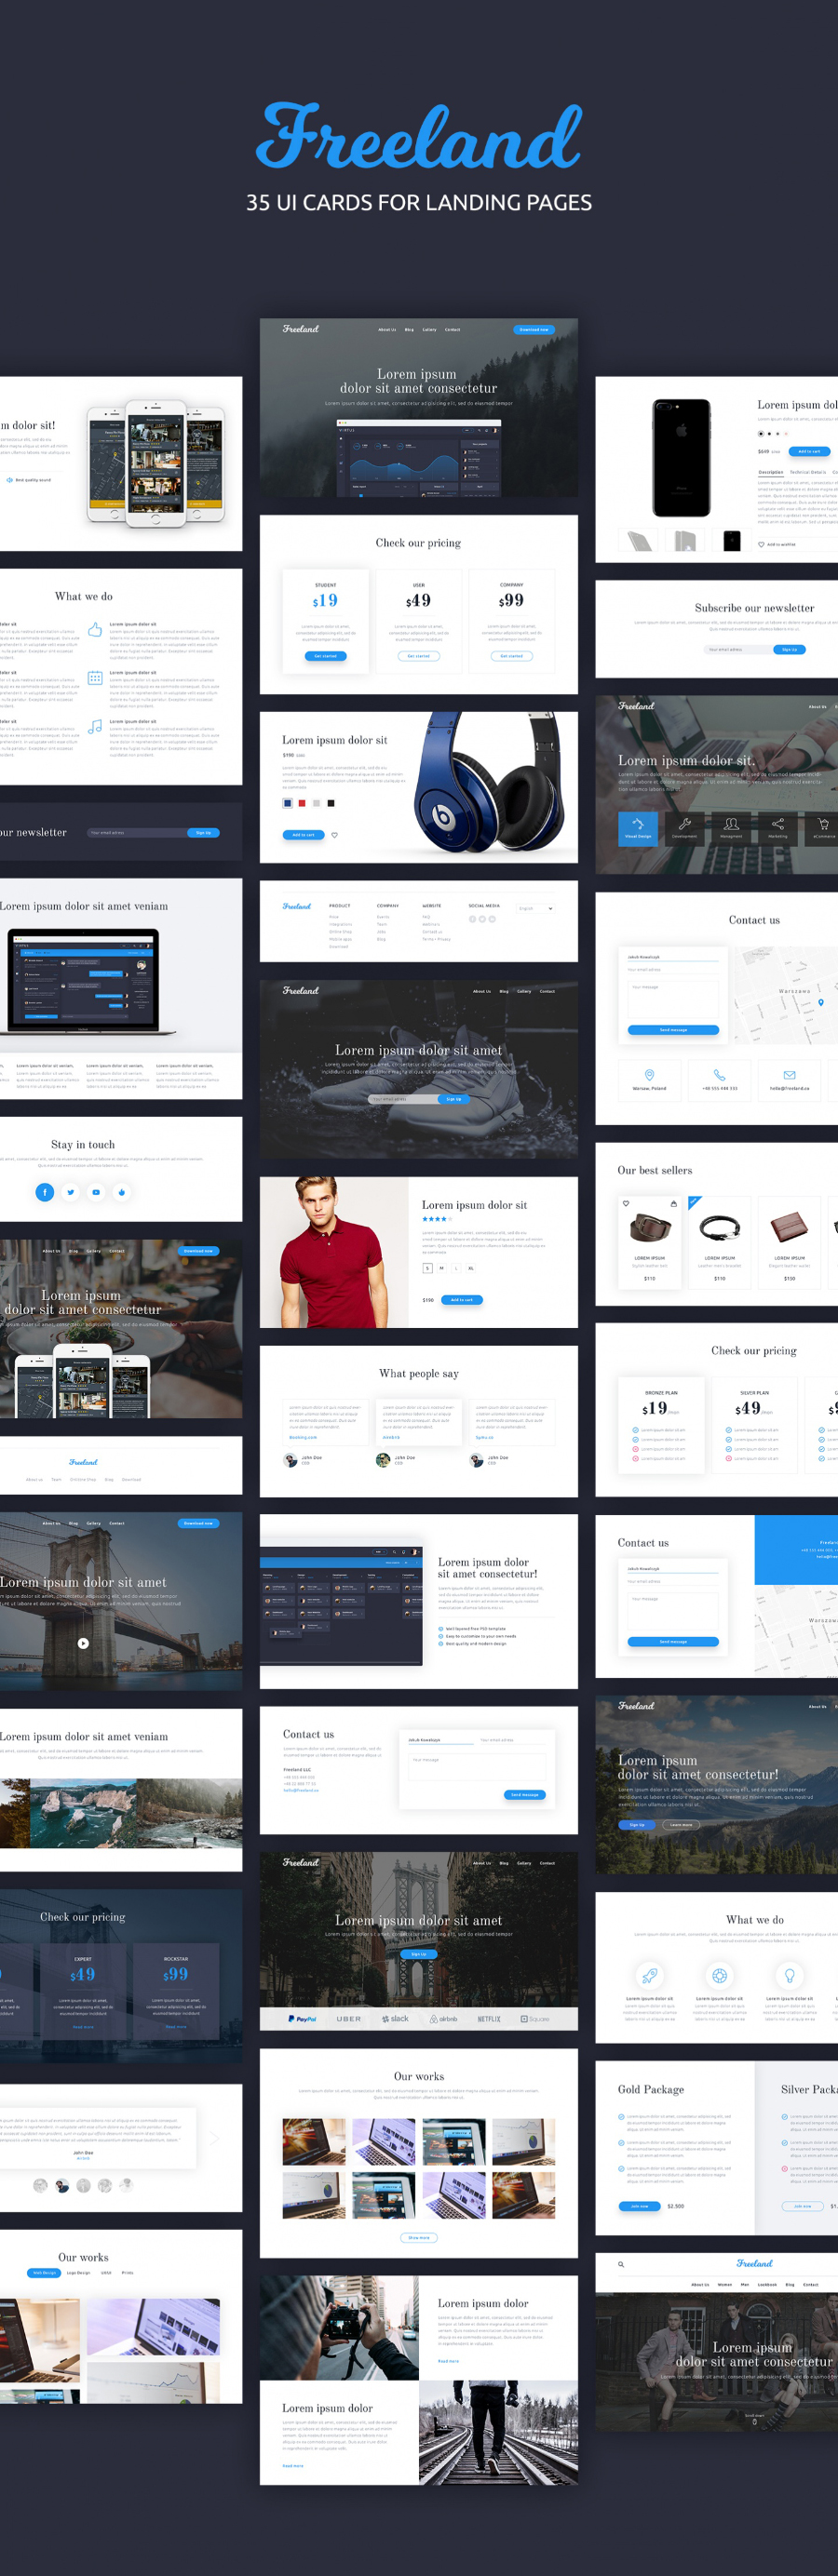 Freeland 35 Landing Pages UI Kit